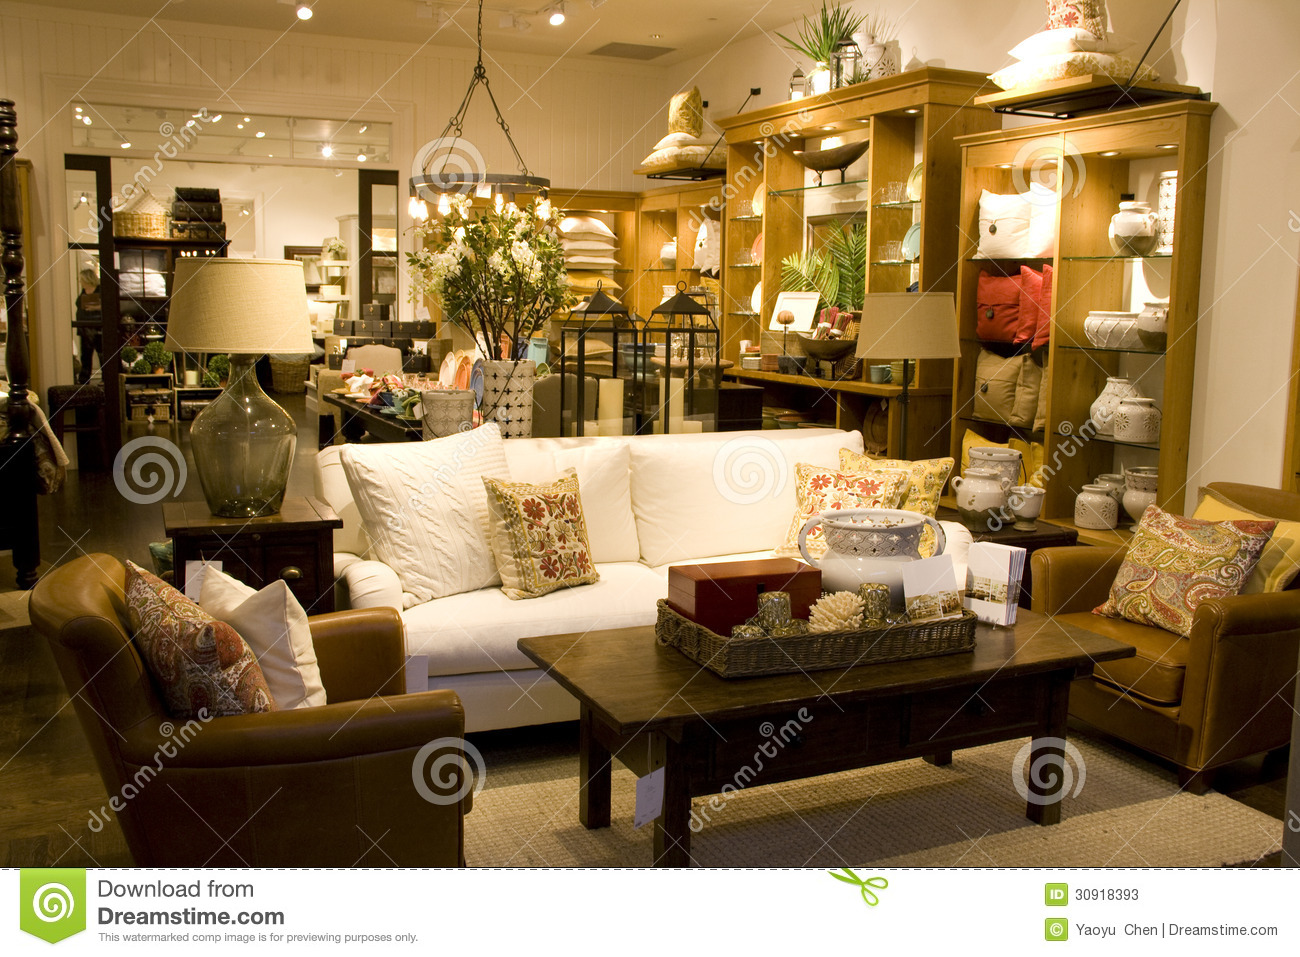 Furniture And Home Decor Store Stock Image